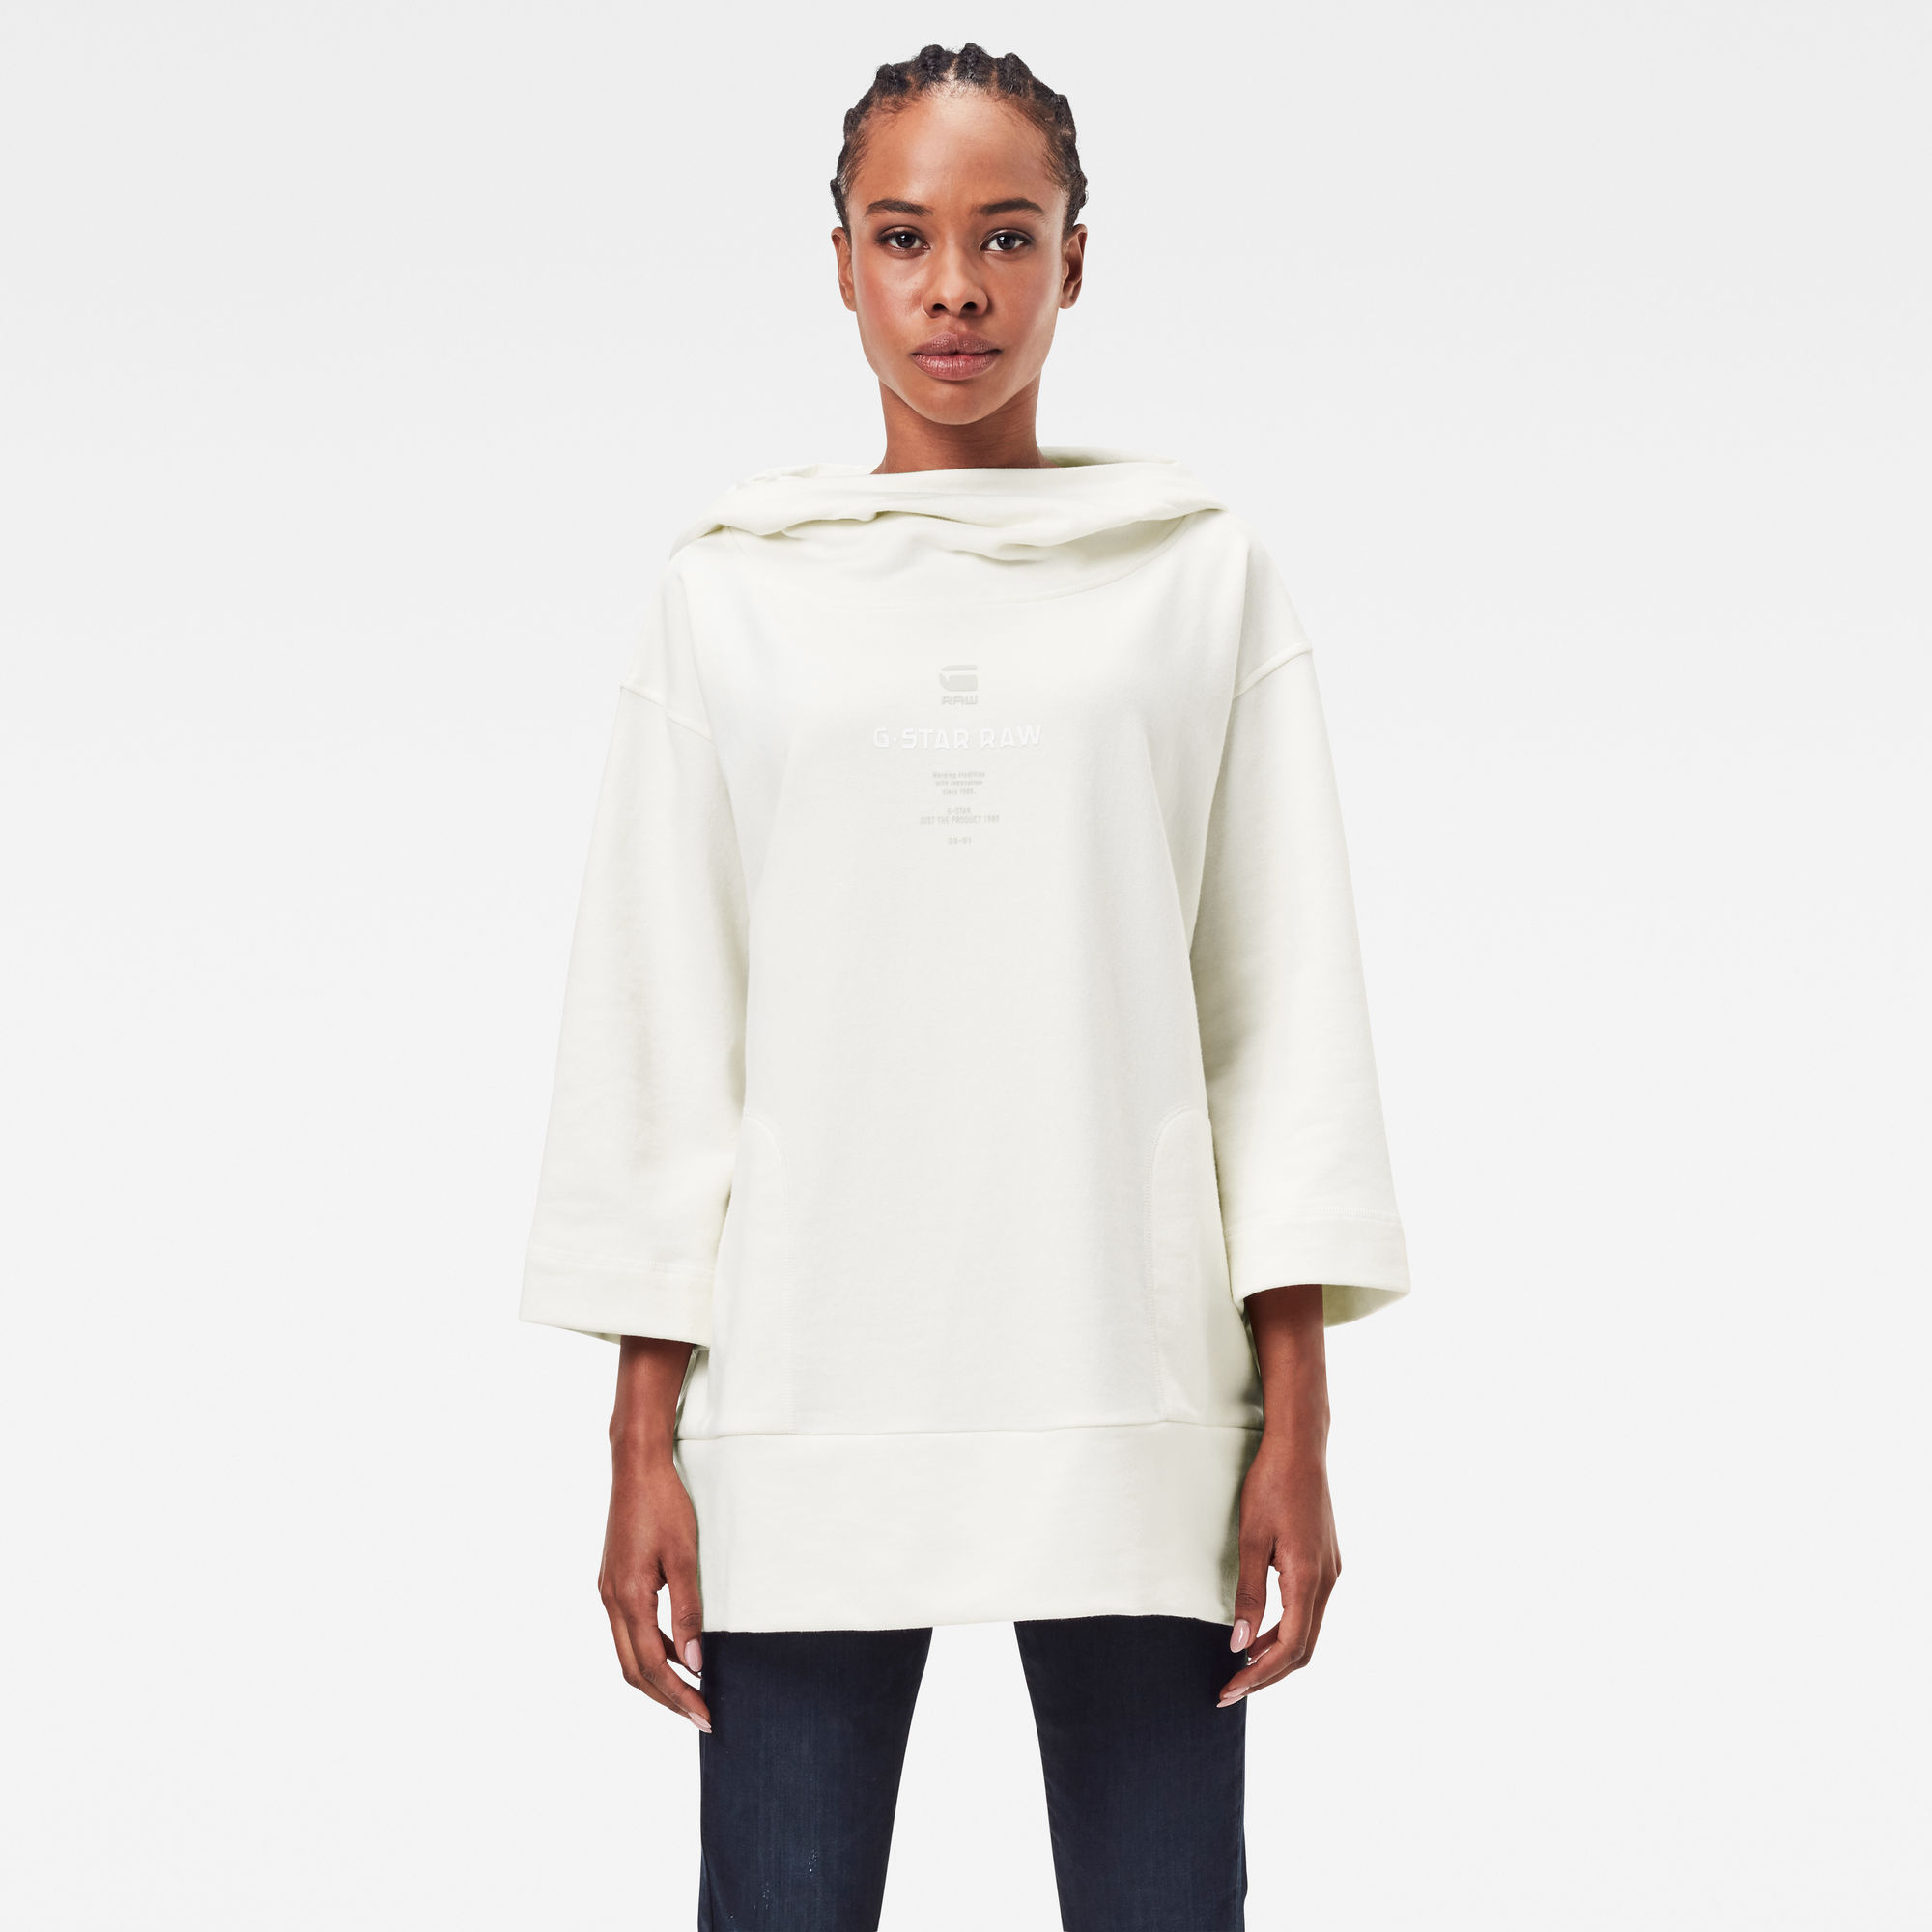 G-Star RAW Dames Oversized Cover Sweater Met Capuchon Wit